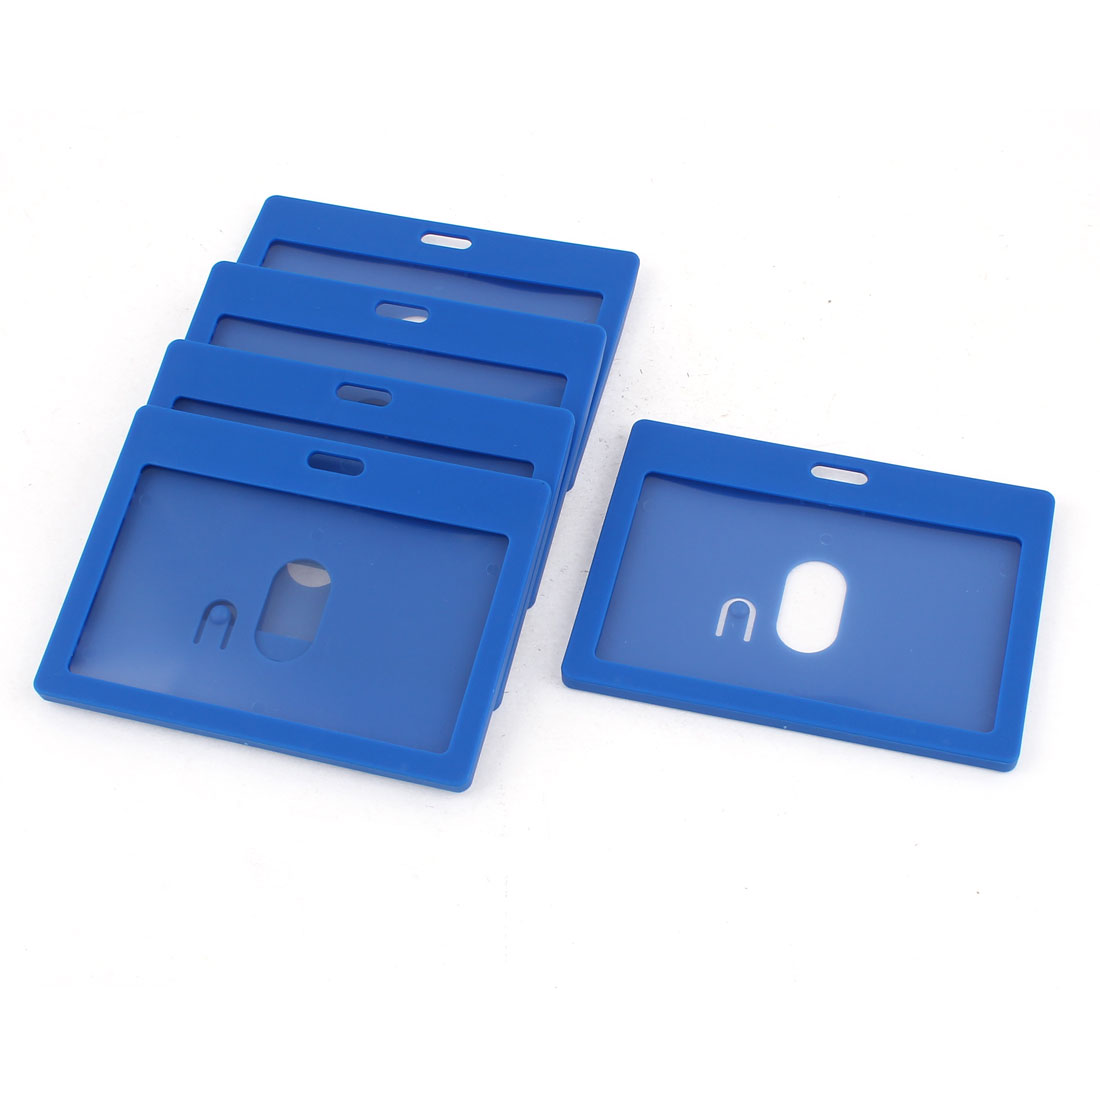 6pcs Blue Plastic Horizontal School Work ID Holder Attachment Top 9cm x 5.5cm